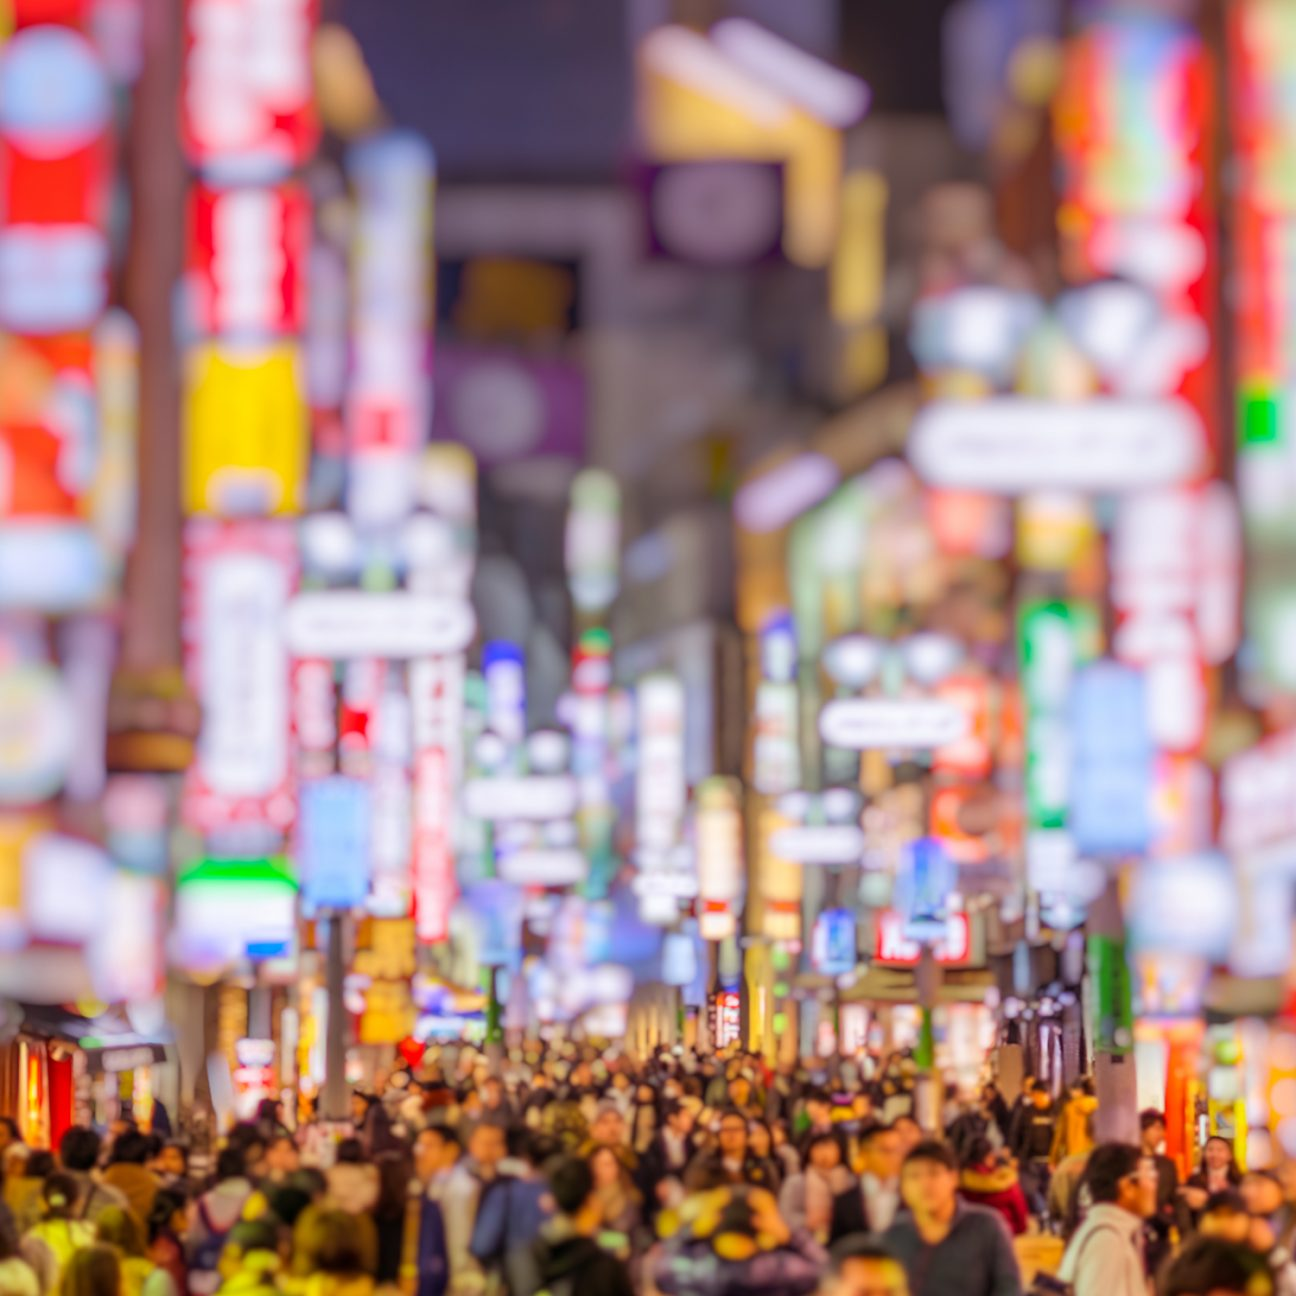 neon signs and crowds in Tokyo